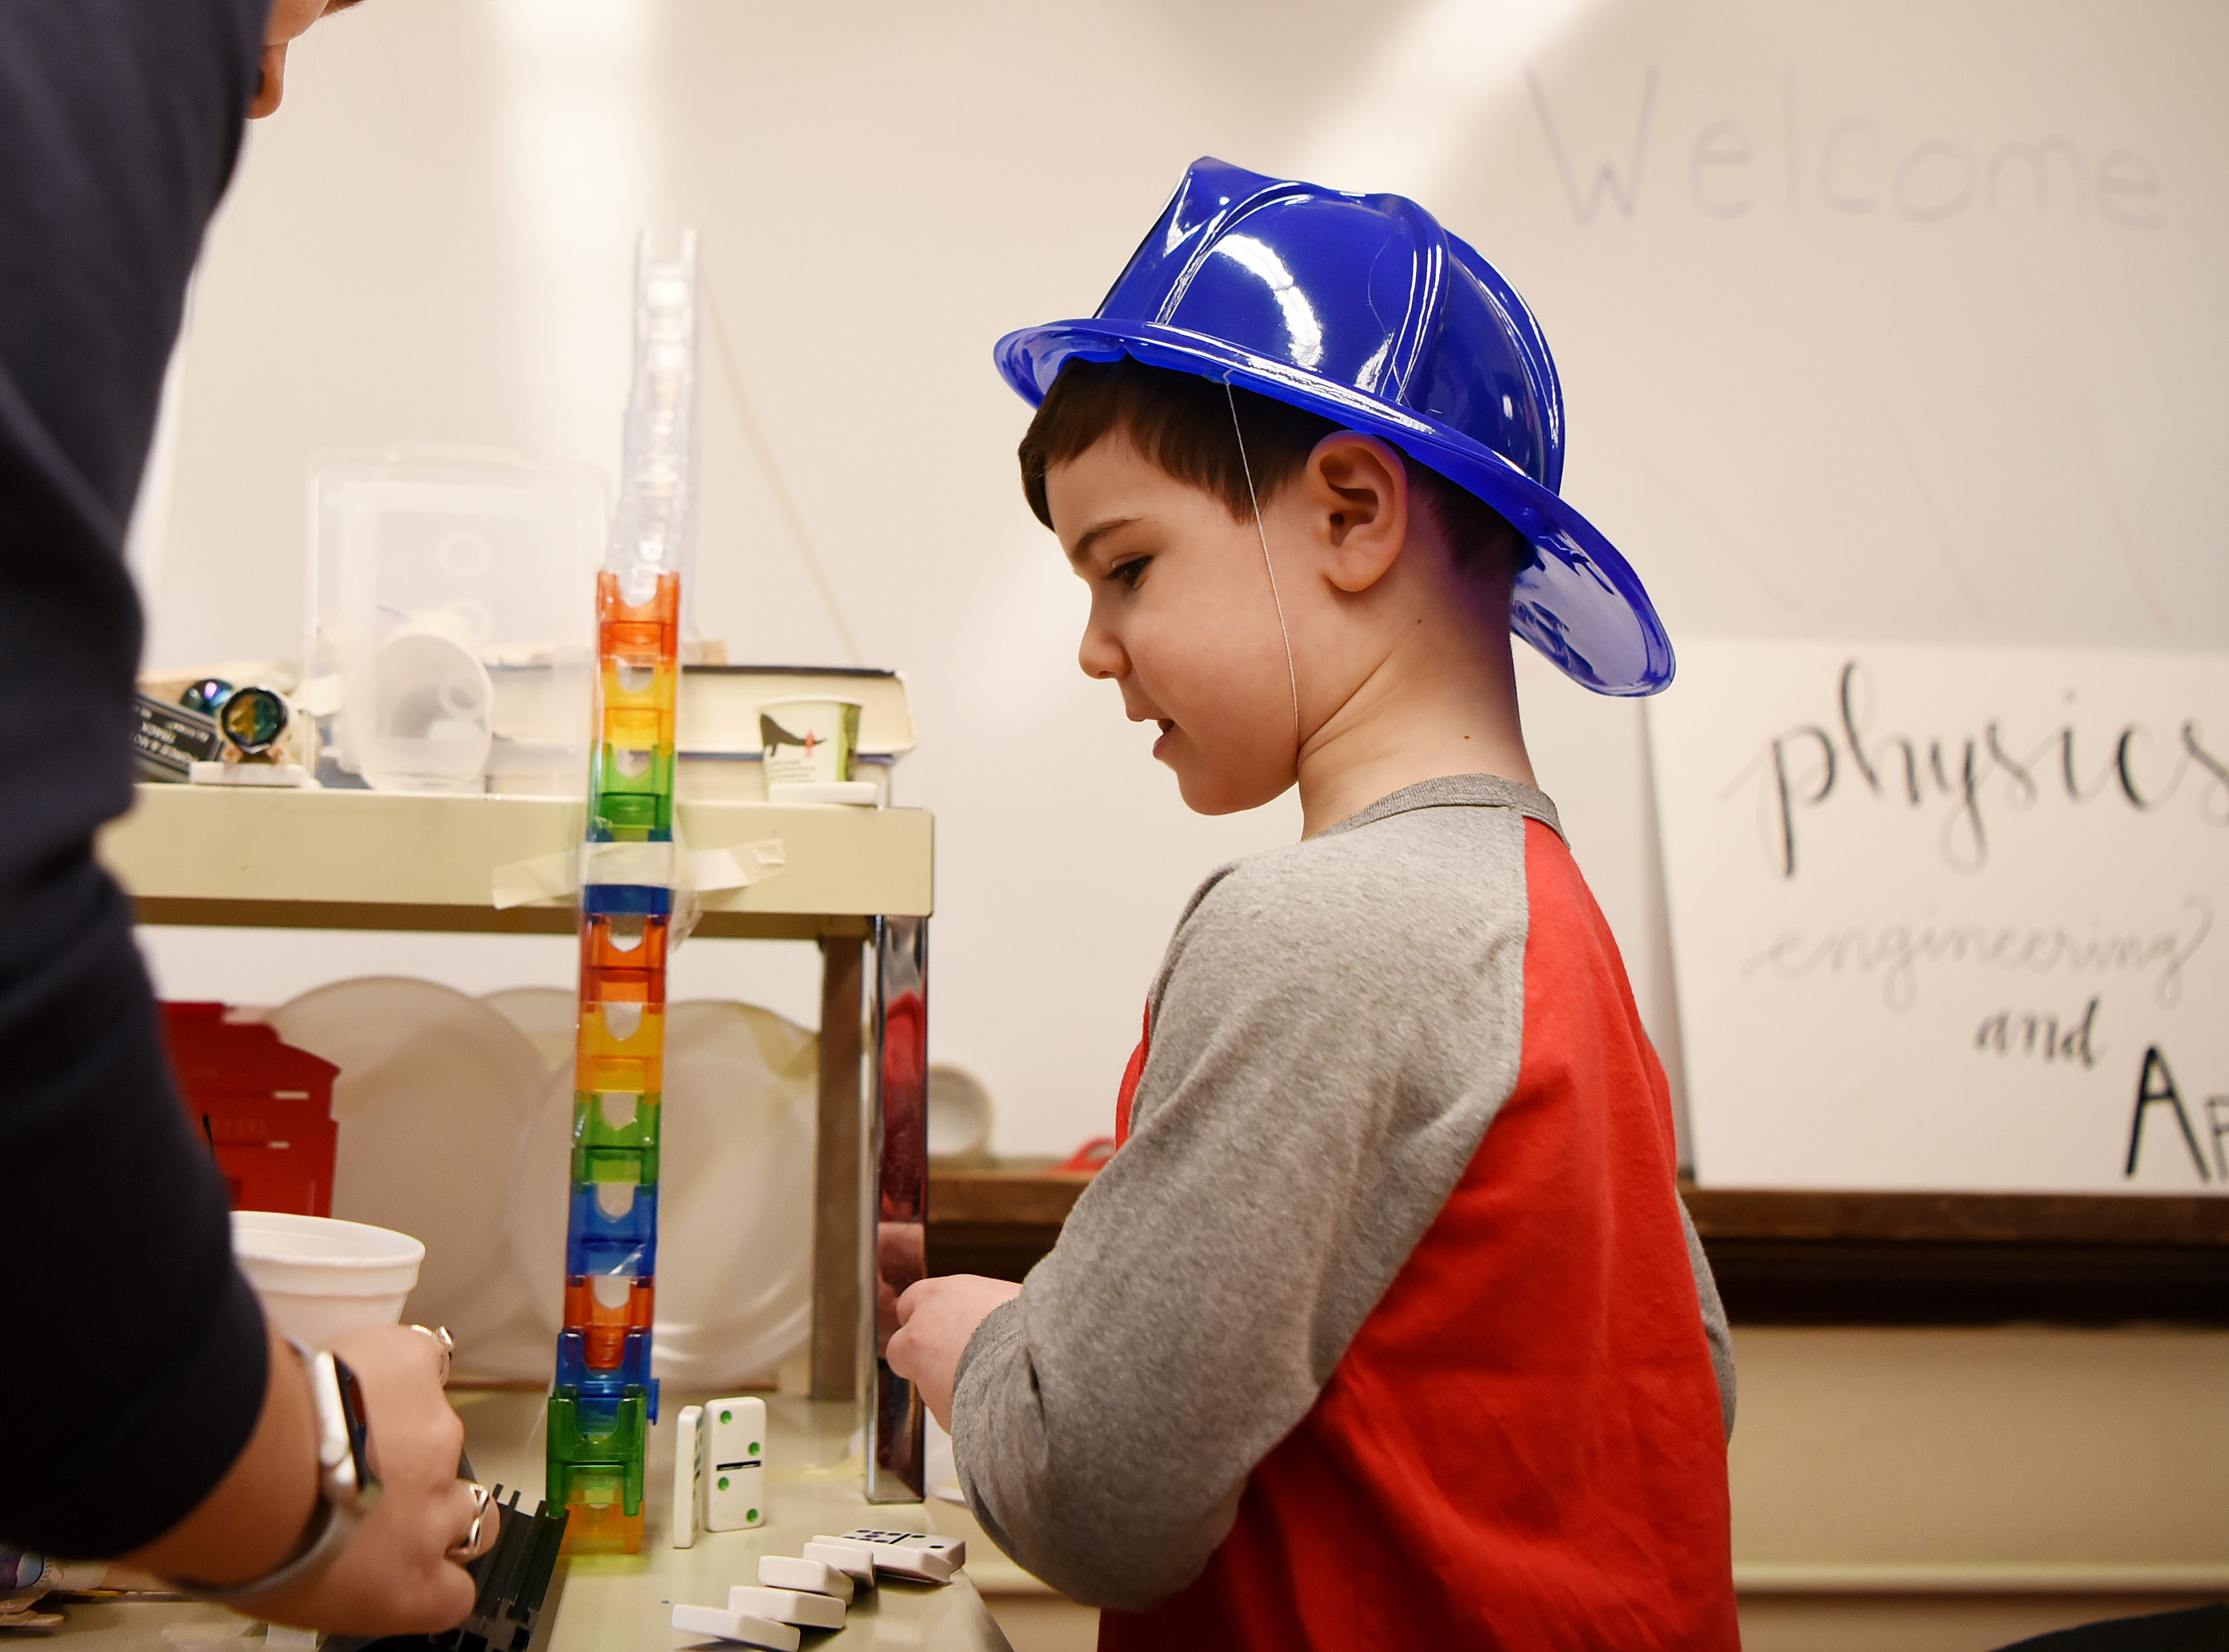 Matthew Bordman, 5, helps set up a Rube Goldberg machine during Super Science Saturday held at Ridgewood High School in Ridgewood on Saturday March 2, 2019.